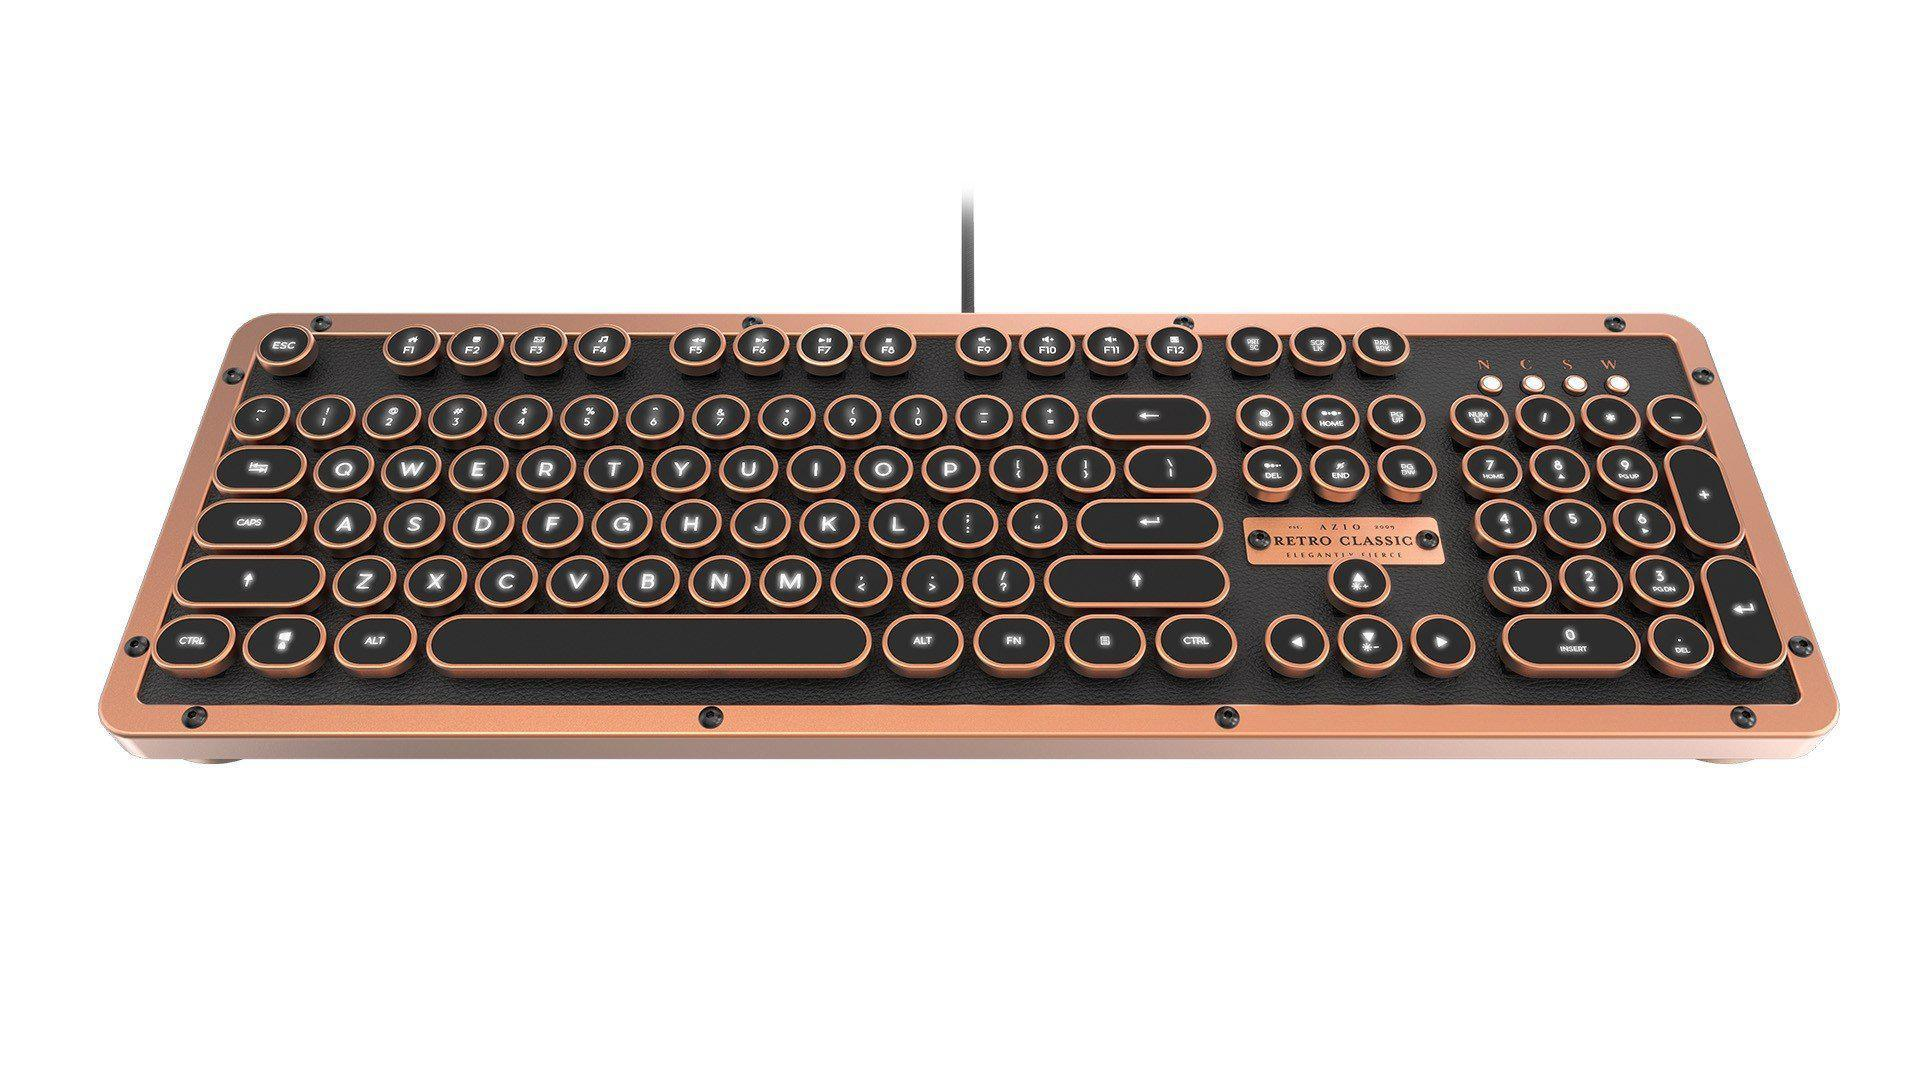 AZIO MK RETRO CLASSIC Vintage Typewriter Backlit Mechanical Keyboard in Copper Alloy Trim and Black